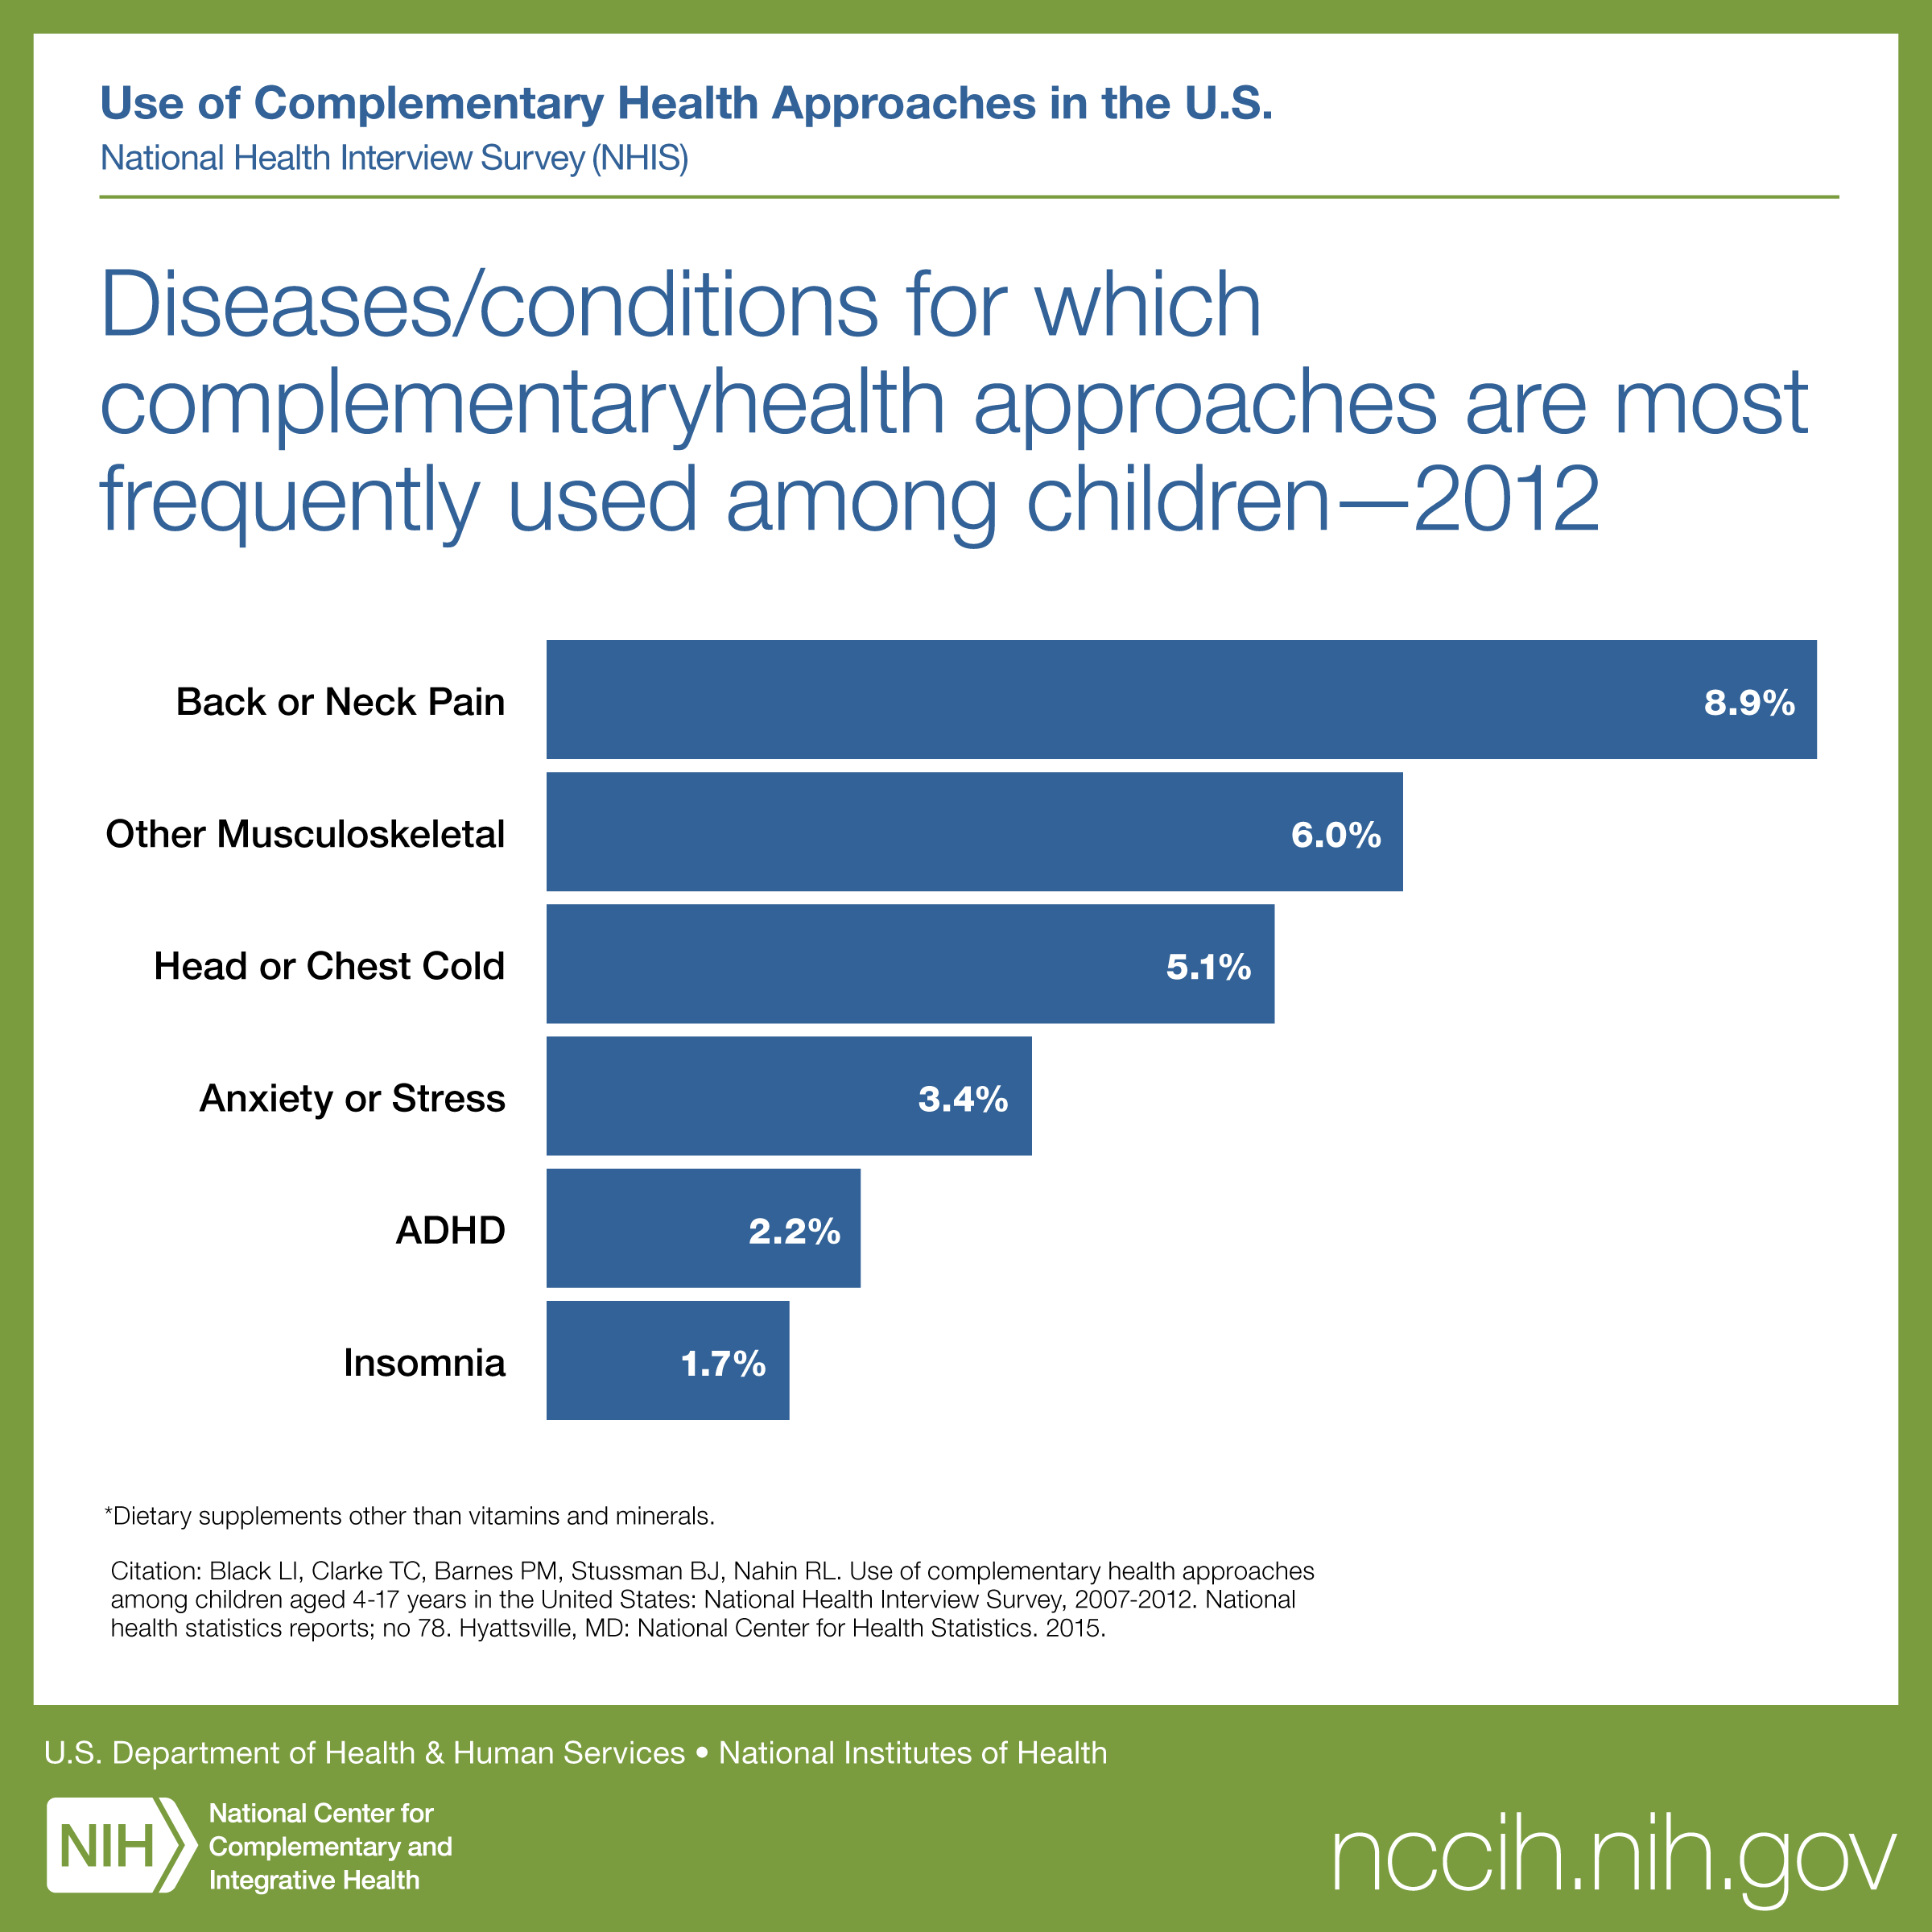 Children And The Use Of Complementary Health Approaches